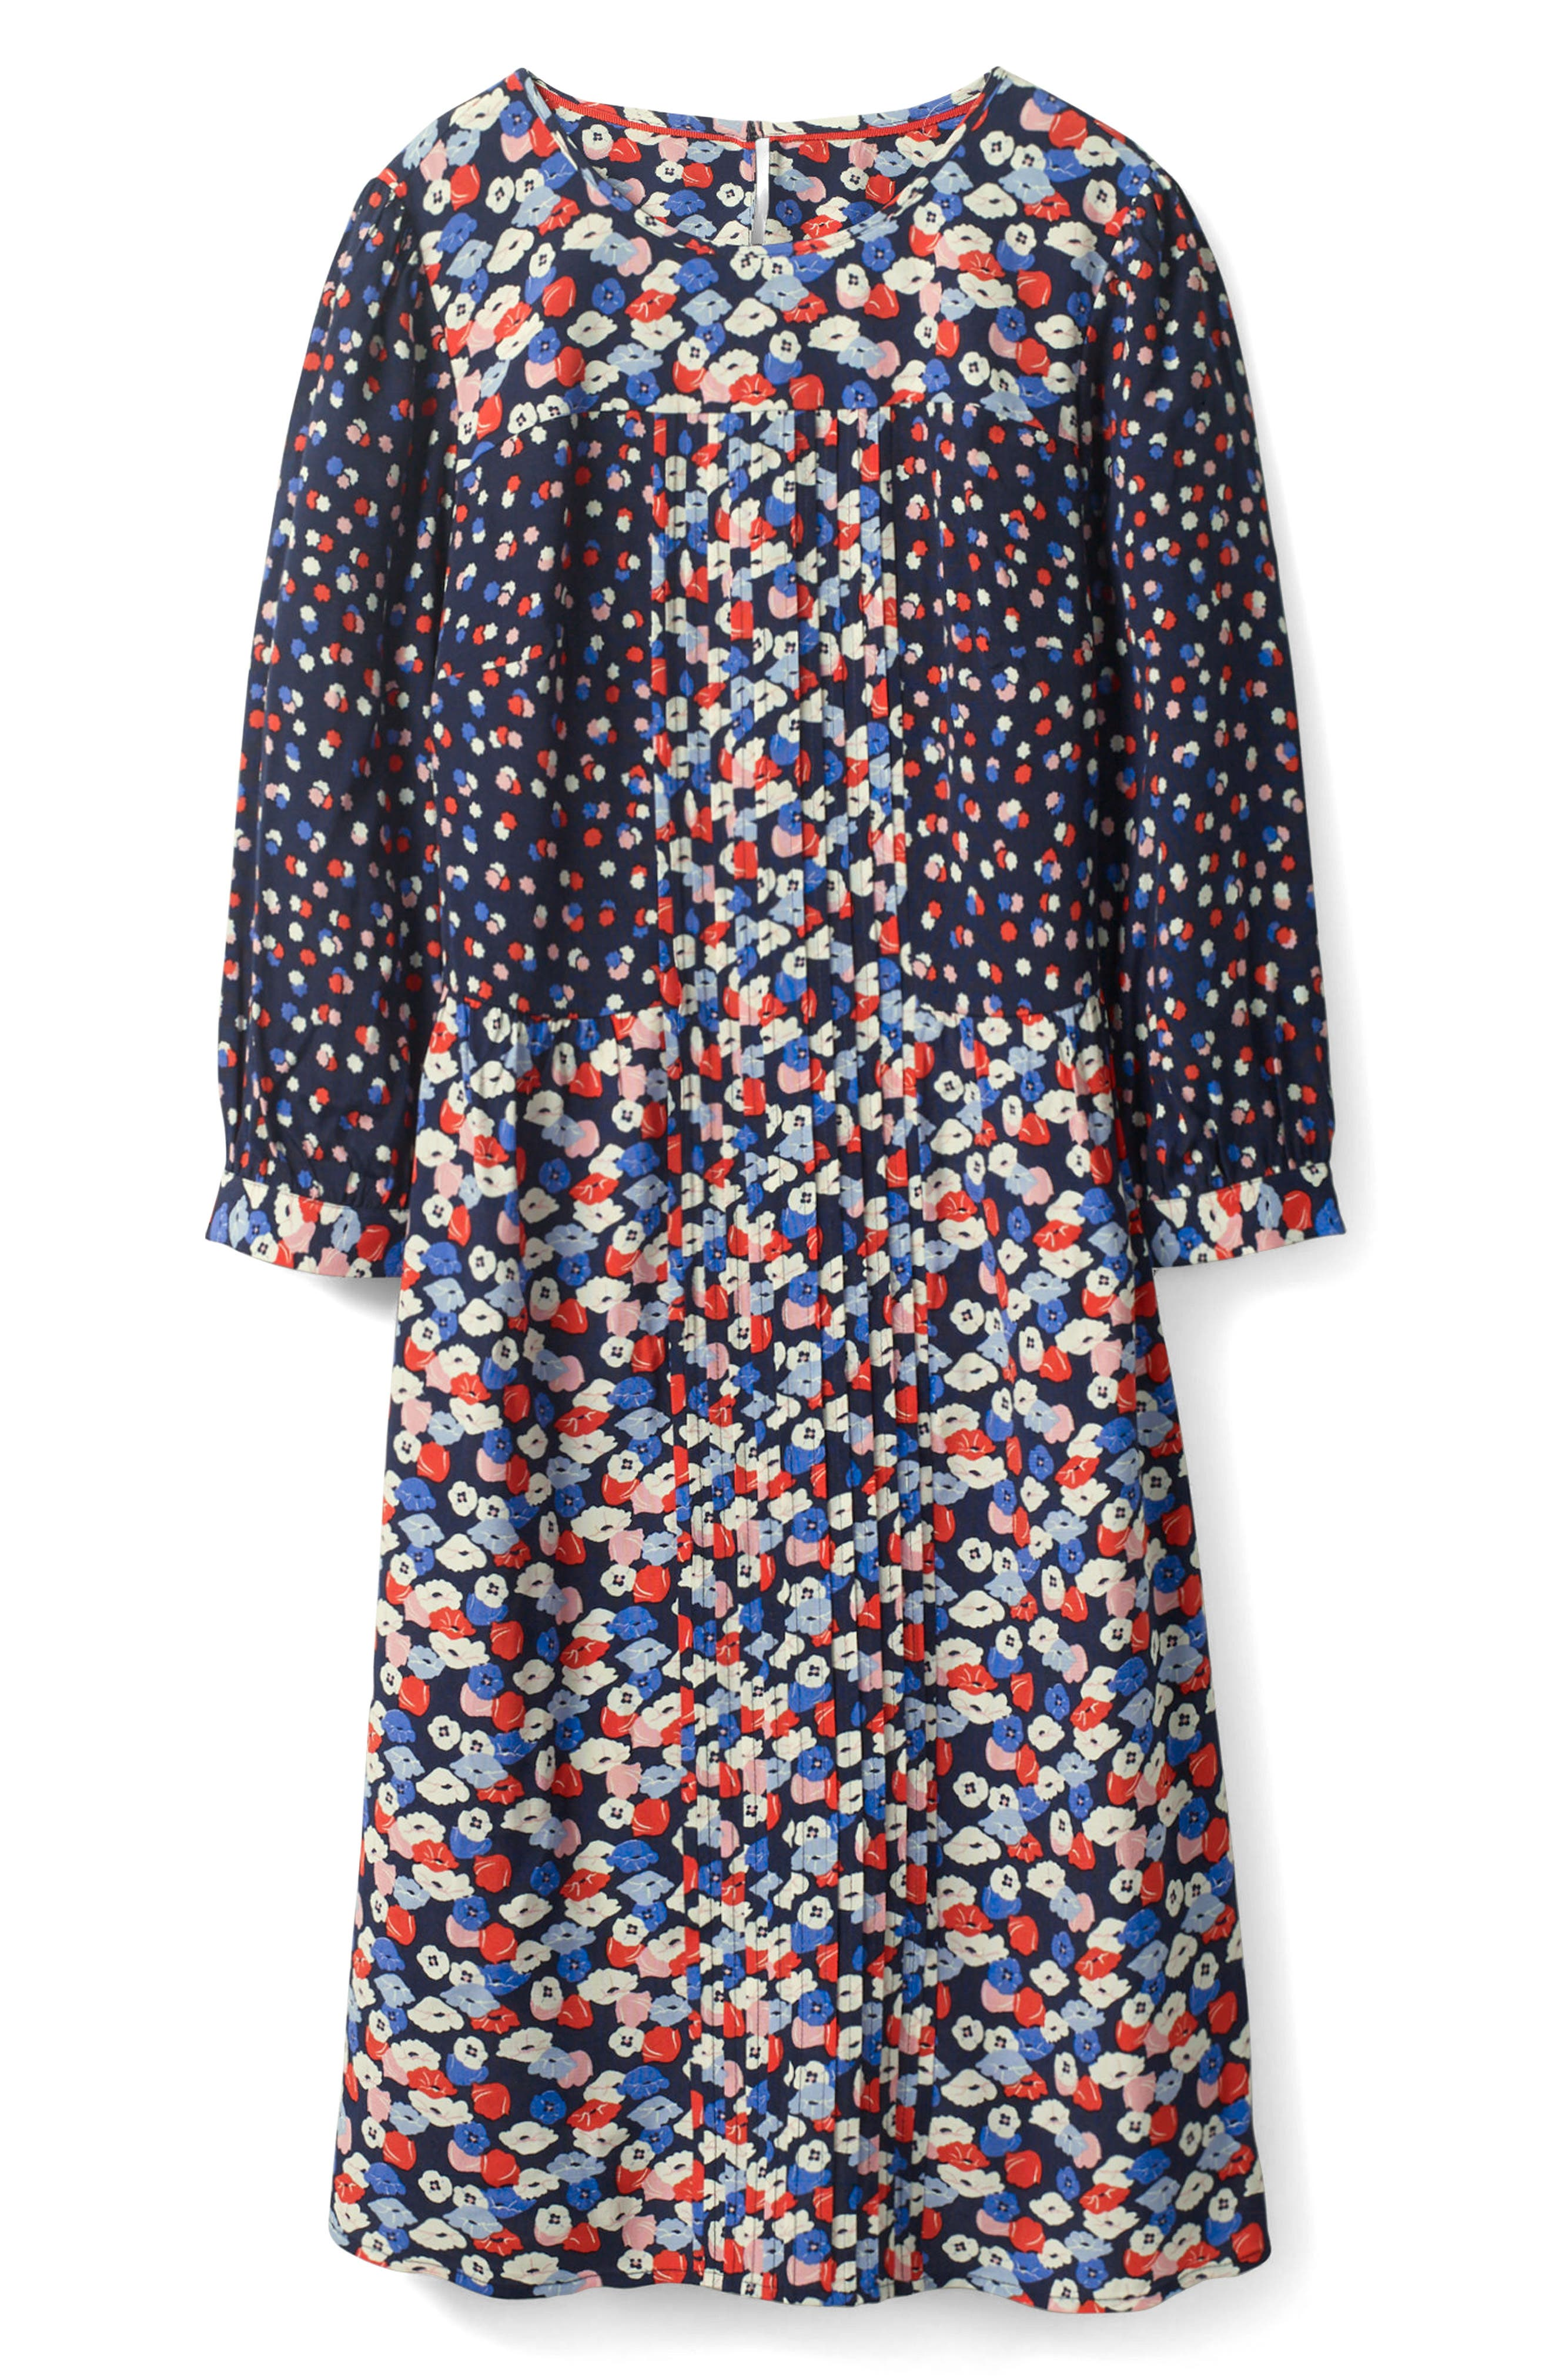 Alternate Image 1 Selected - Boden Hotchpotch Pattern Mix Pintuck Dress